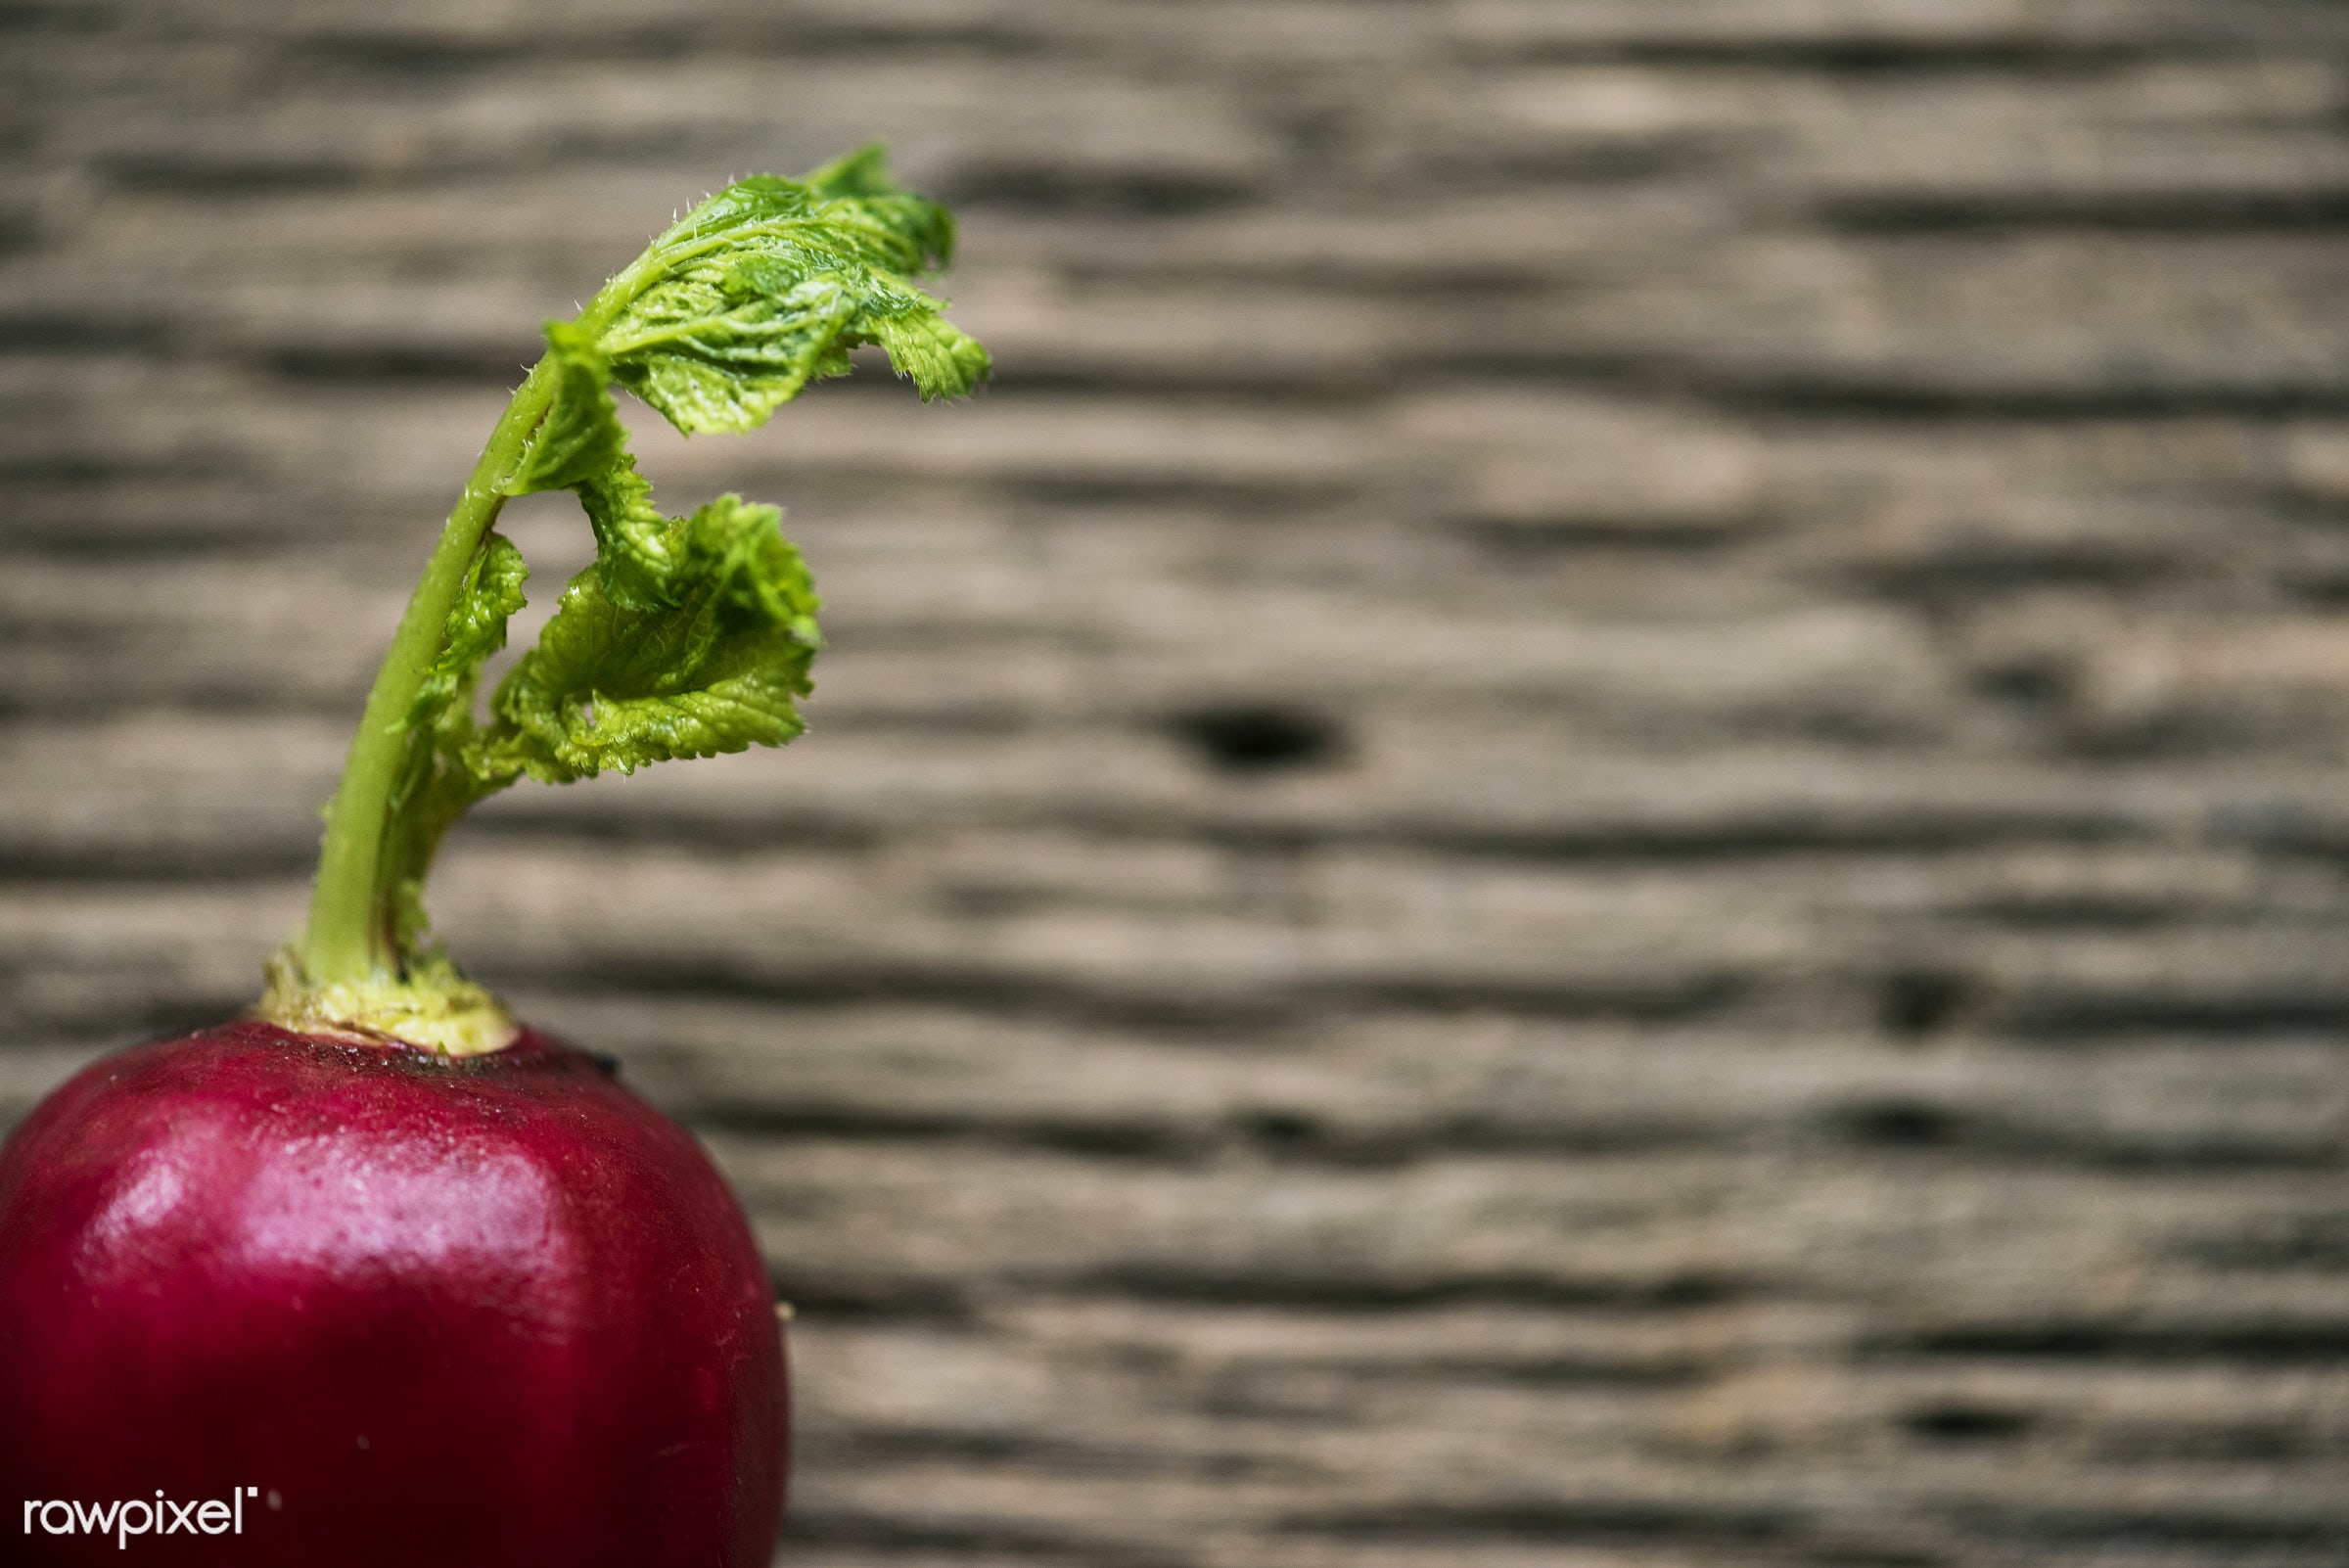 raw, nobody, roots, leaves, radish, real, beets, organic, red, nature, fresh, vegetable, closeup, wooden table